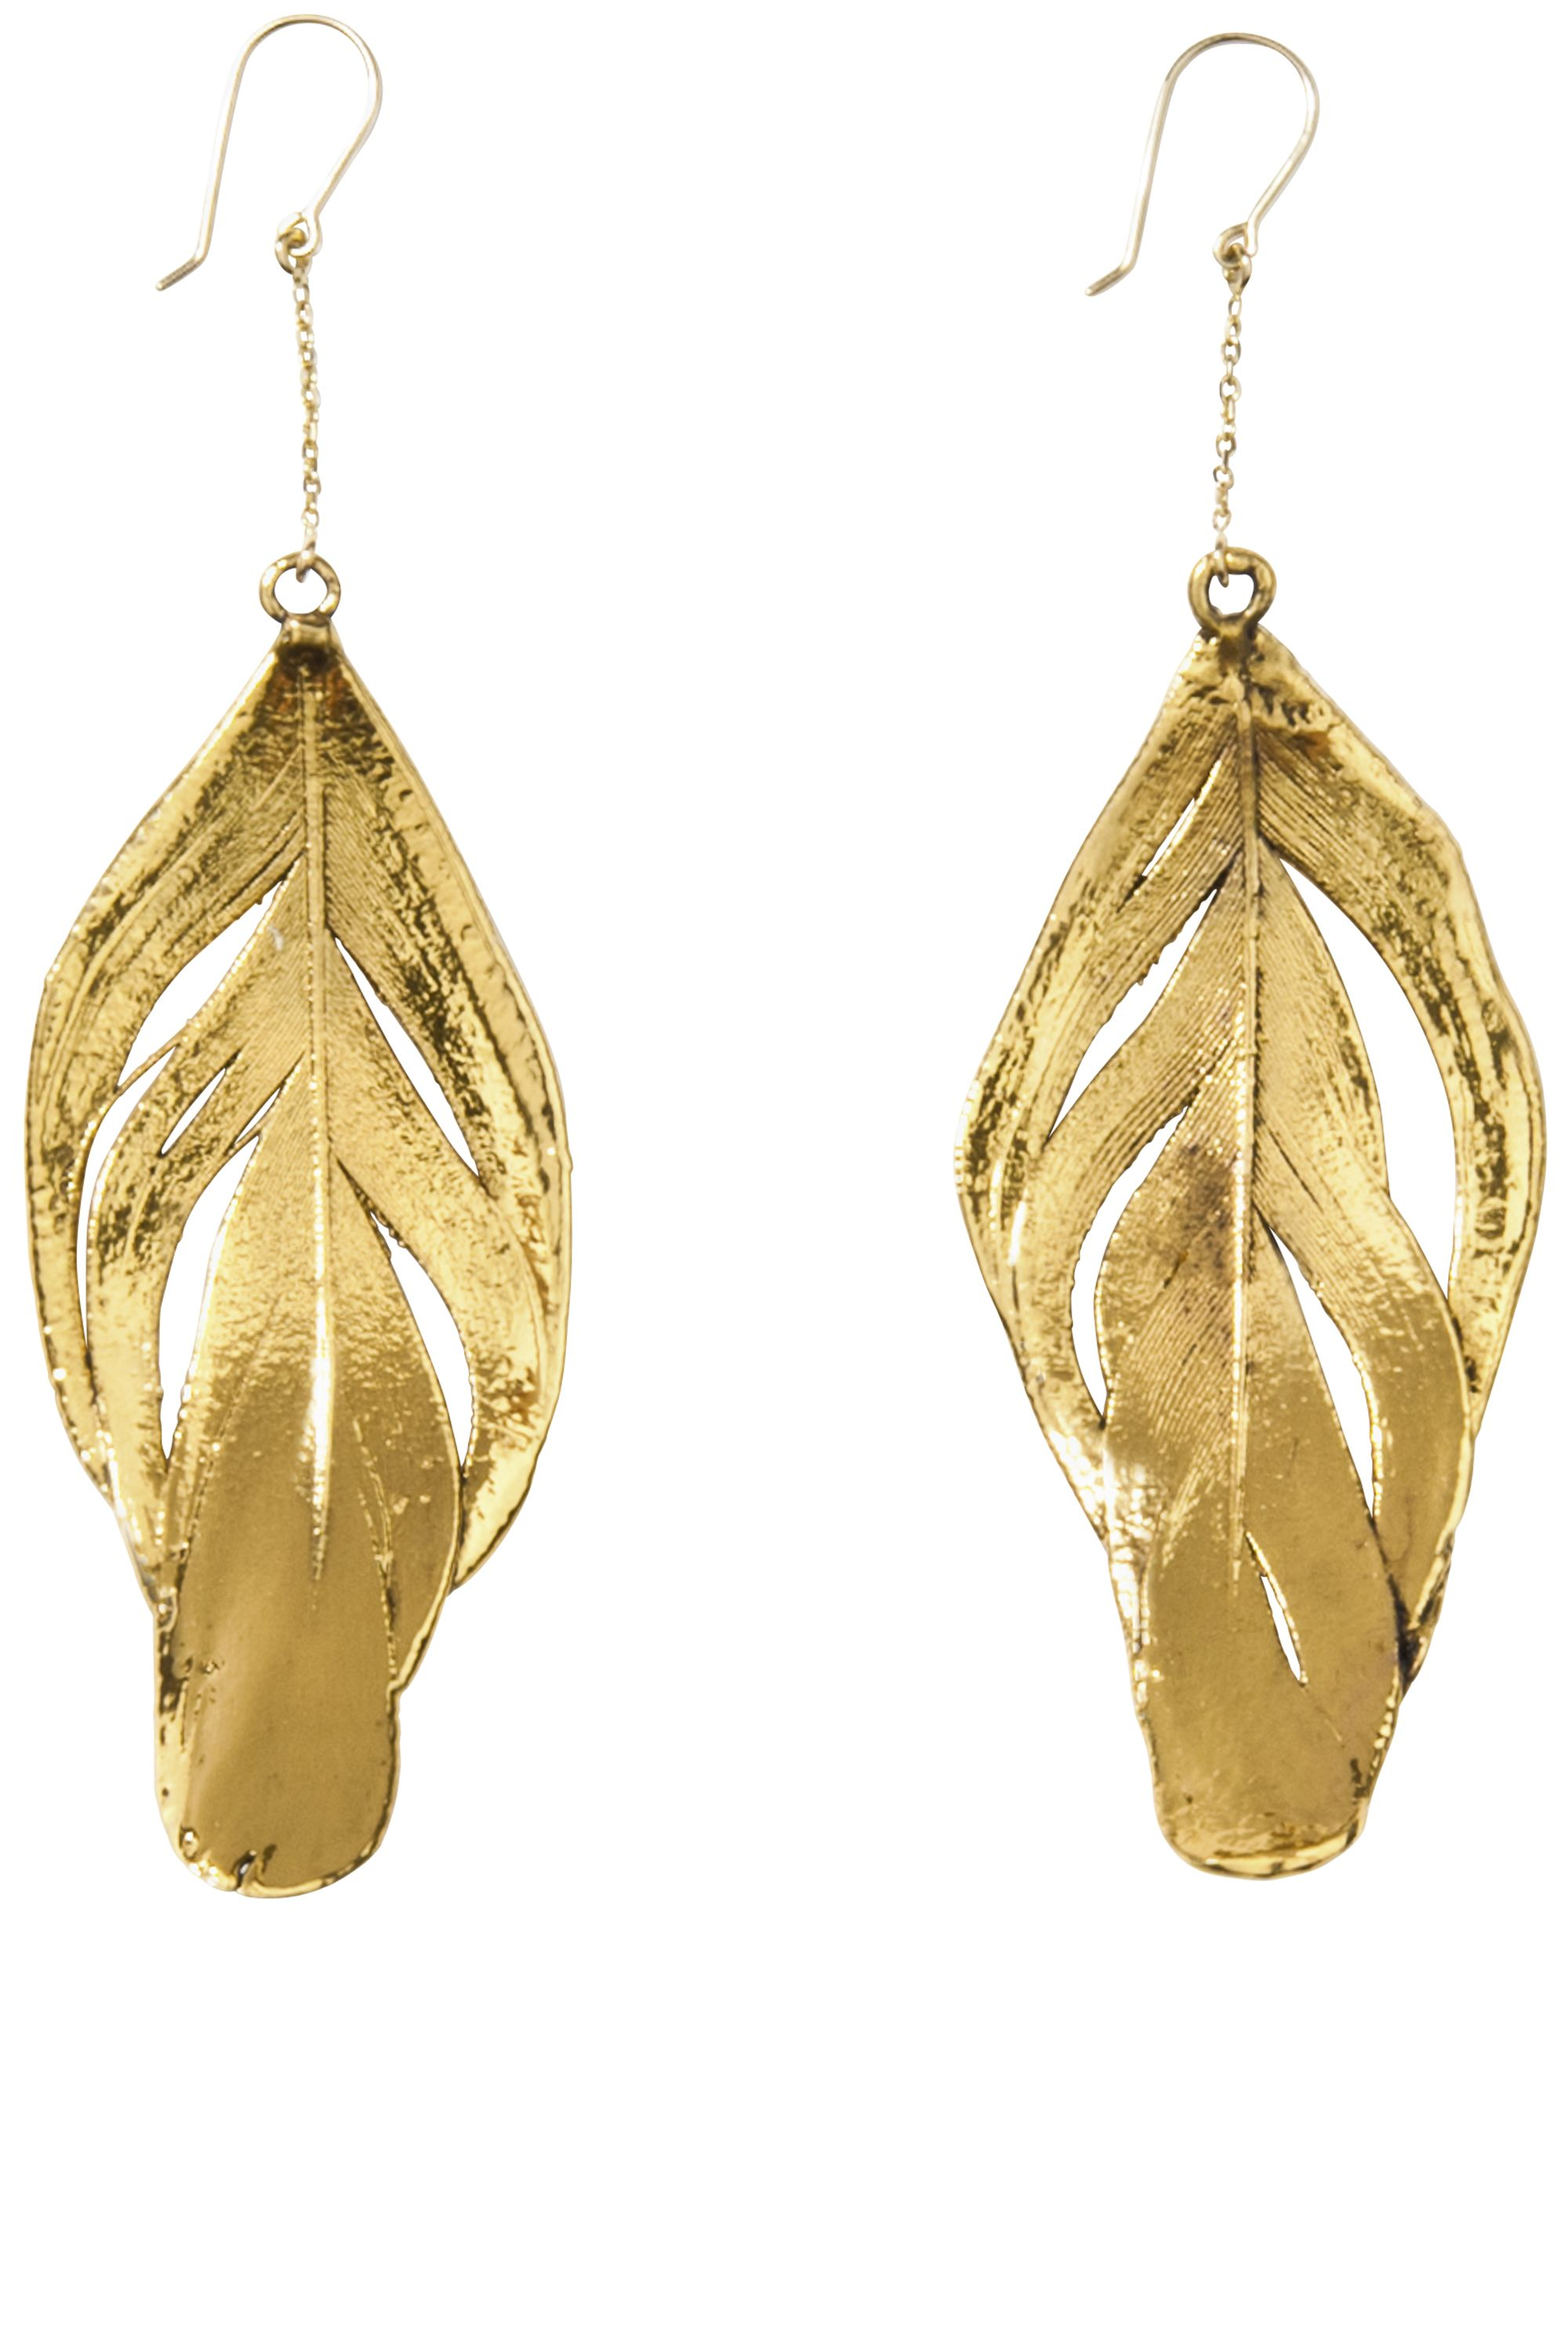 "<strong>Aurelie Bidermann </strong>earrings, $905,<a href=""http://shop.harpersbazaar.com/designers/aurelie-bidermann/swan-feather-earrings/""> shopBAZAAR.com</a><img src=""http://assets.hdmtools.com/images/HBZ/Shop.svg"" class=""icon shop"">."